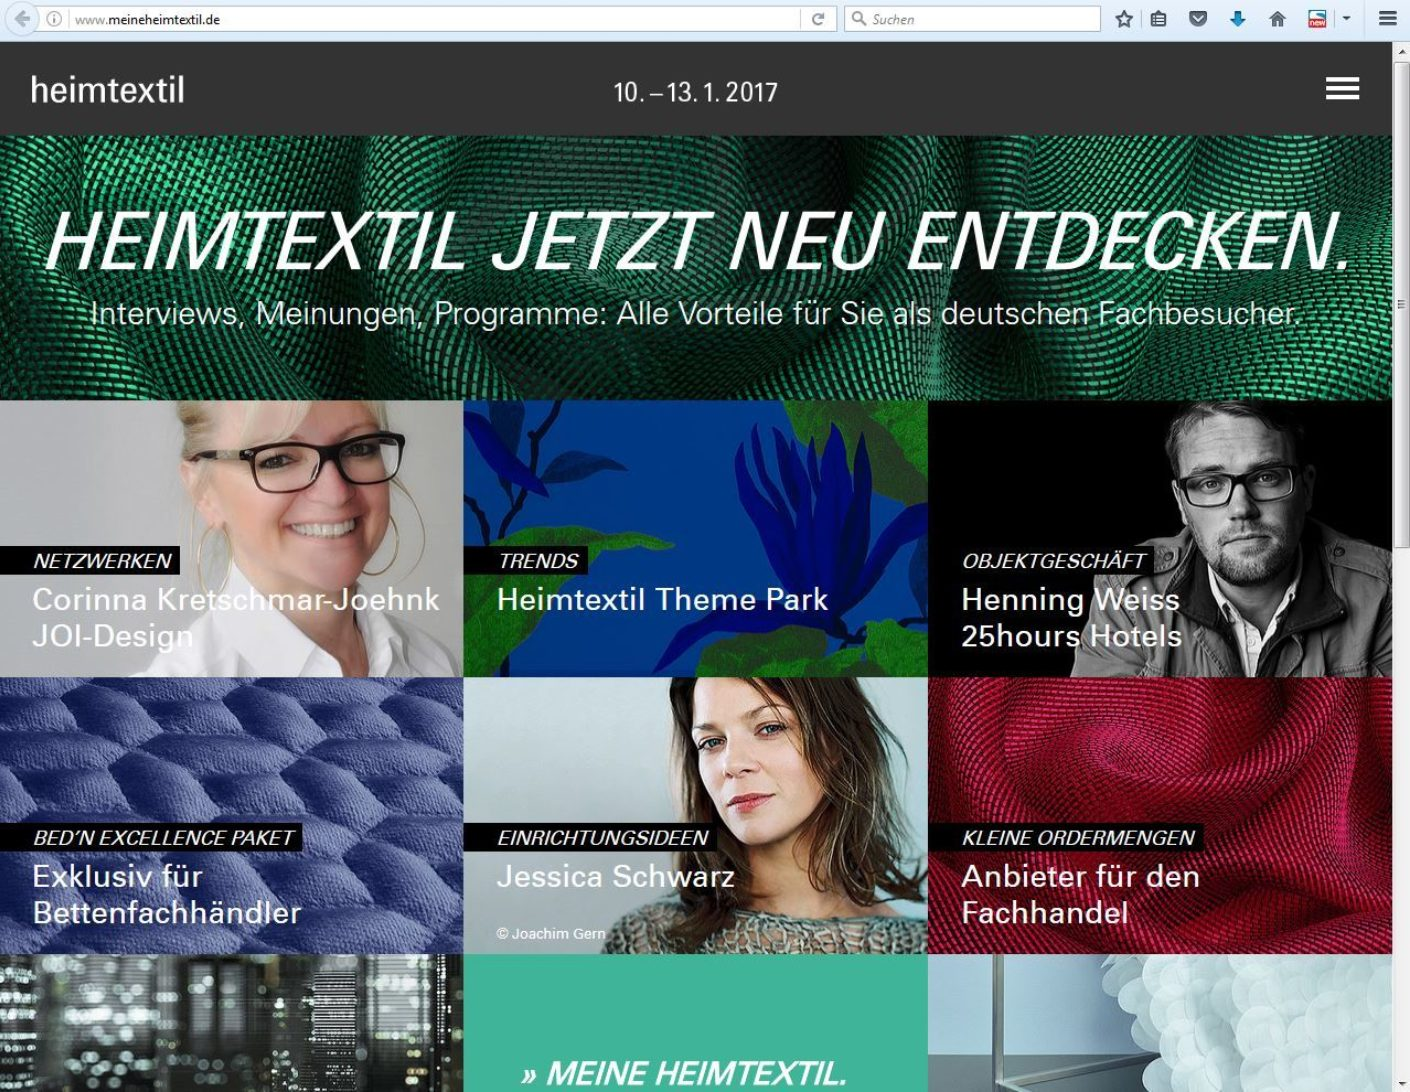 For interior designers and interior decorator​s from the German-speaking world, a new website is available at www.meineheimtextil.de​, which provides a first informative introduction to the Heimtextil.​